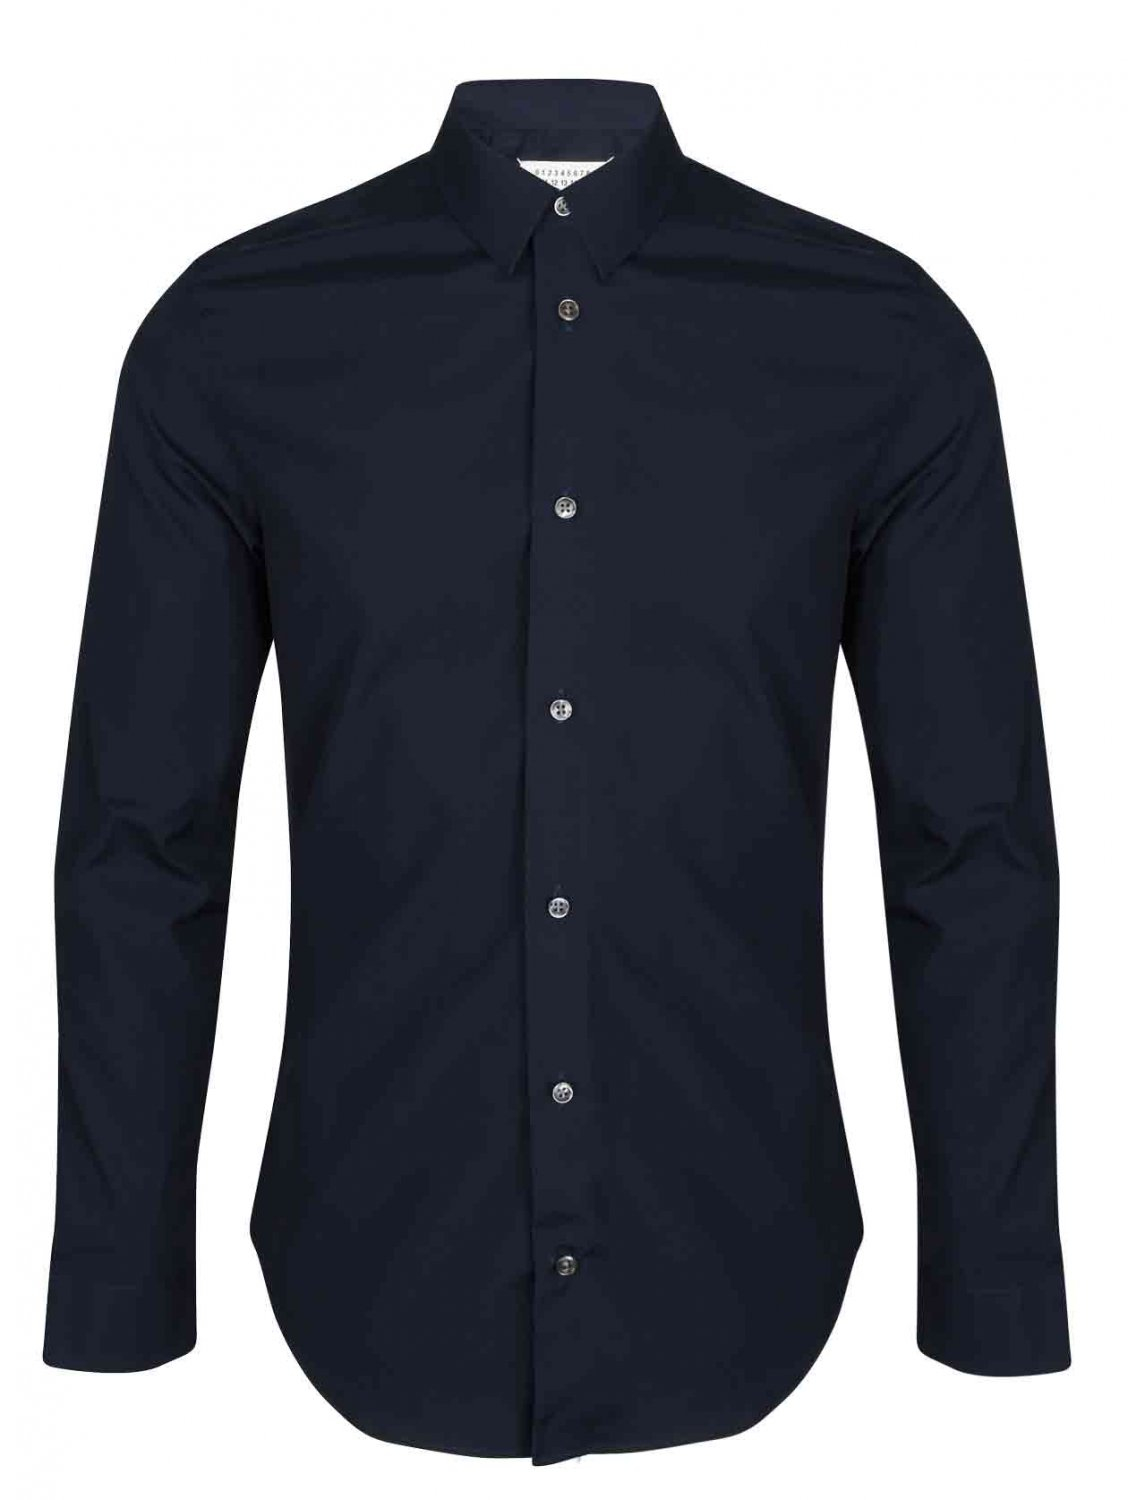 Find great deals on eBay for navy oxford shirt. Shop with confidence.